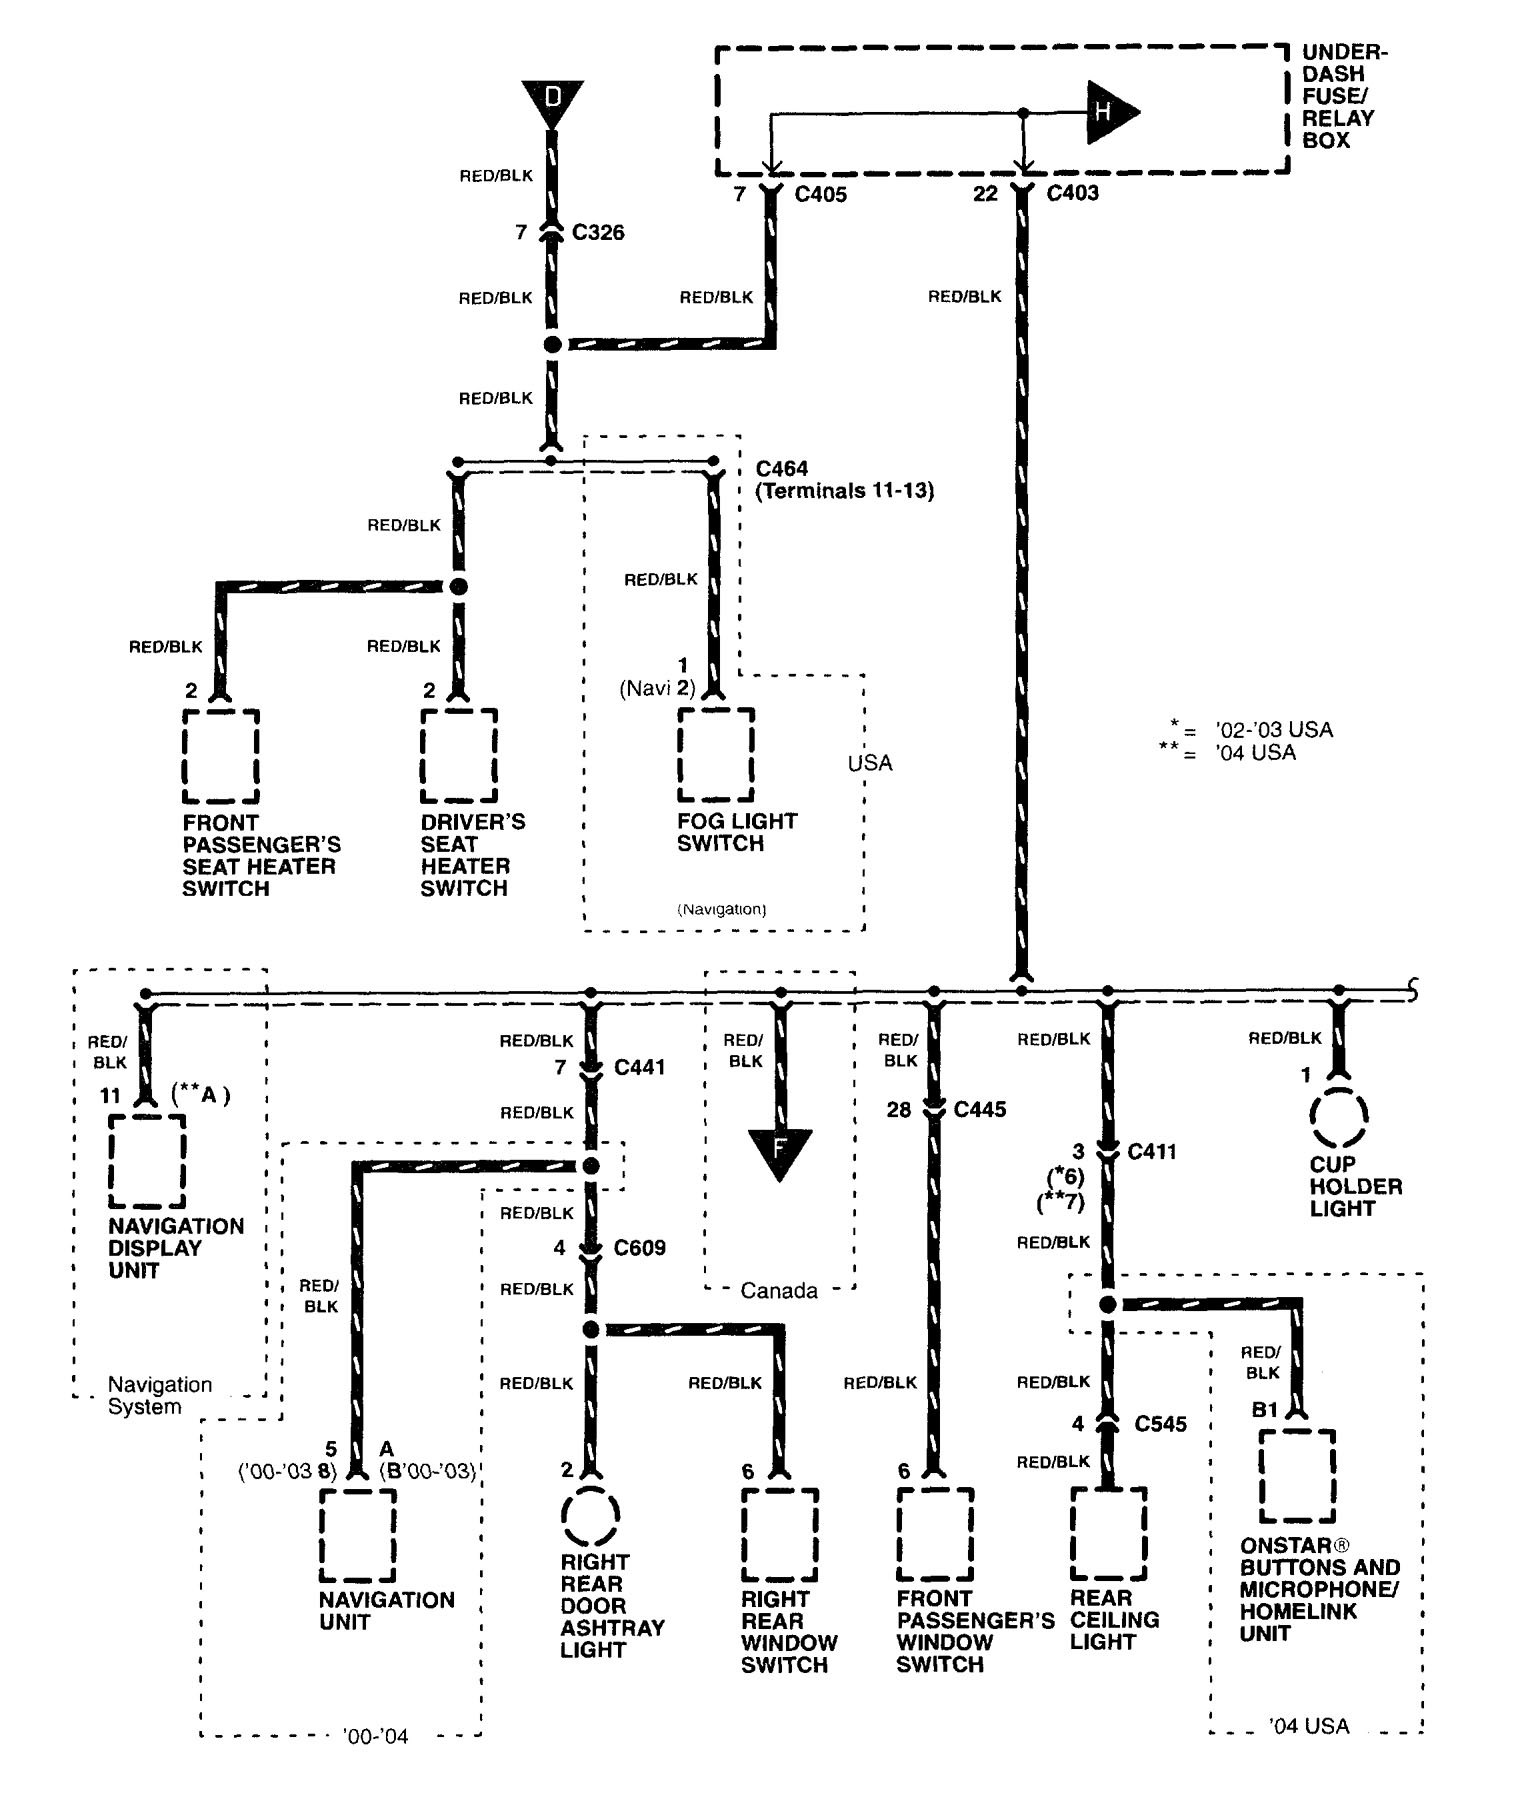 Inglis Dryer Fuse Box | Wiring Diagram Database